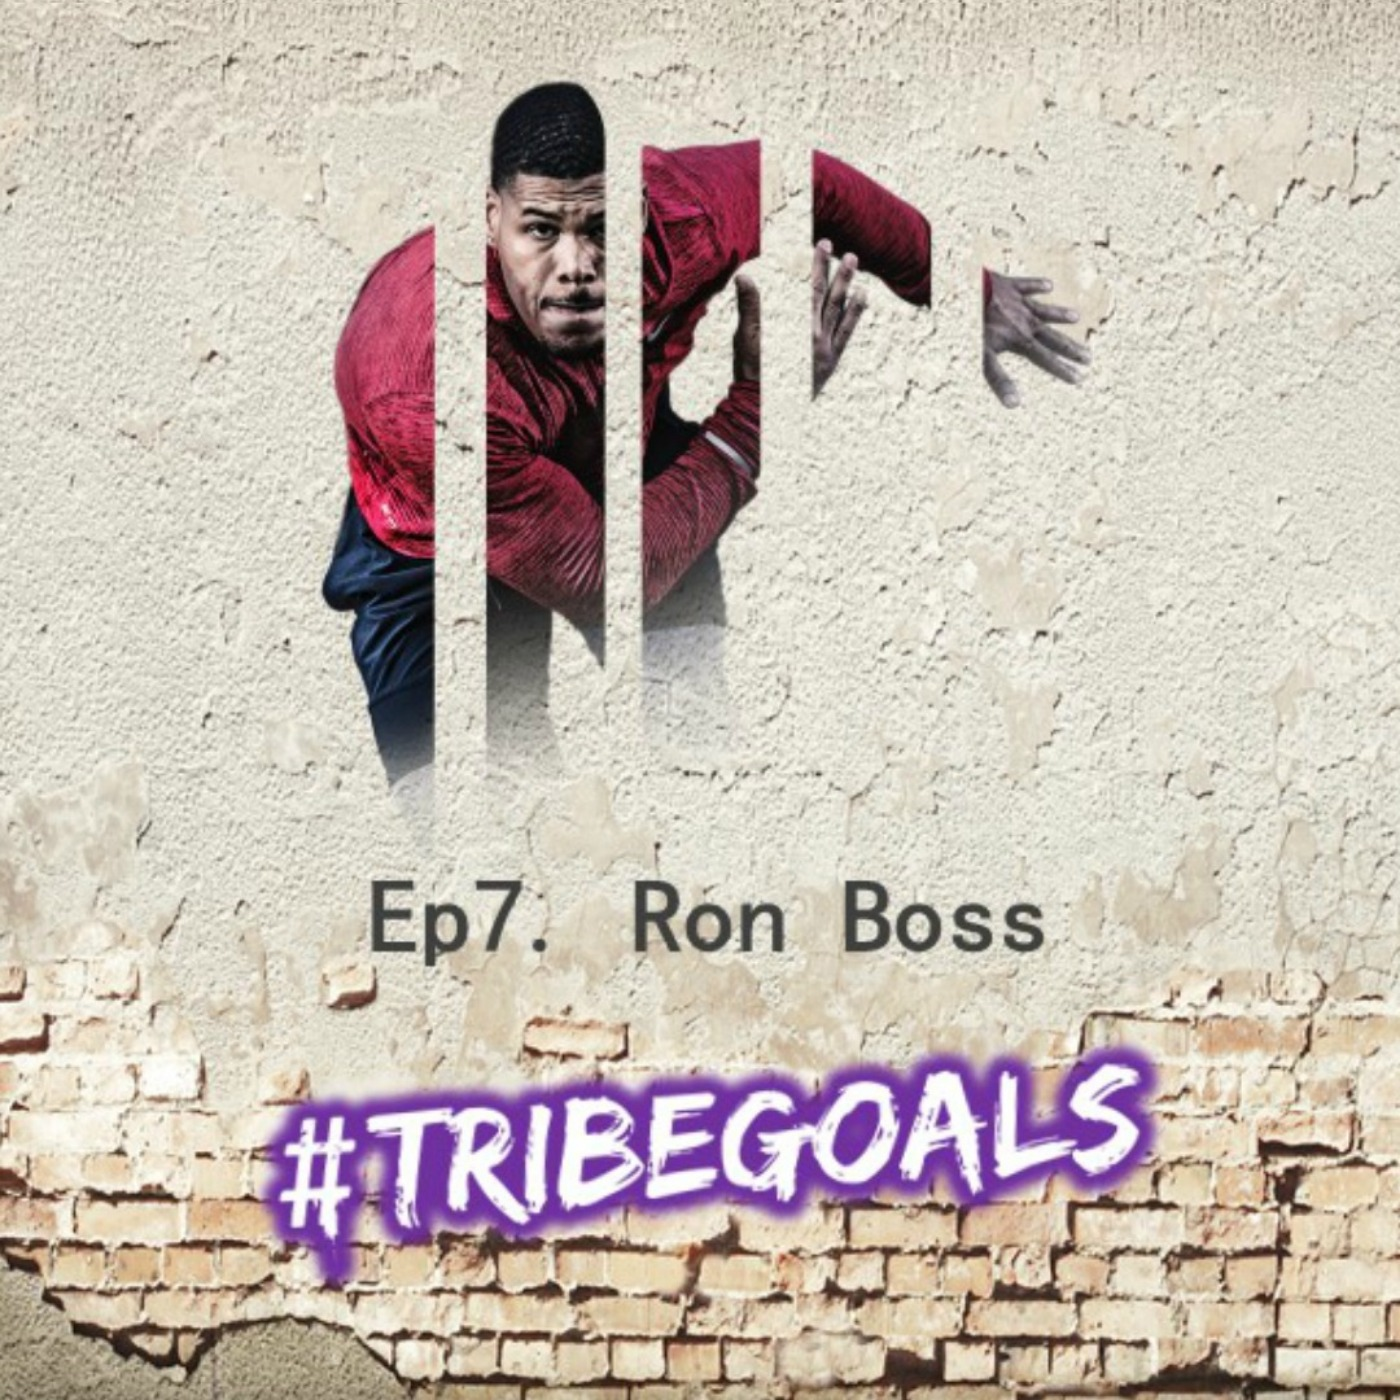 S1. Ep 7. | #TRIBEGOALS with Ron Boss